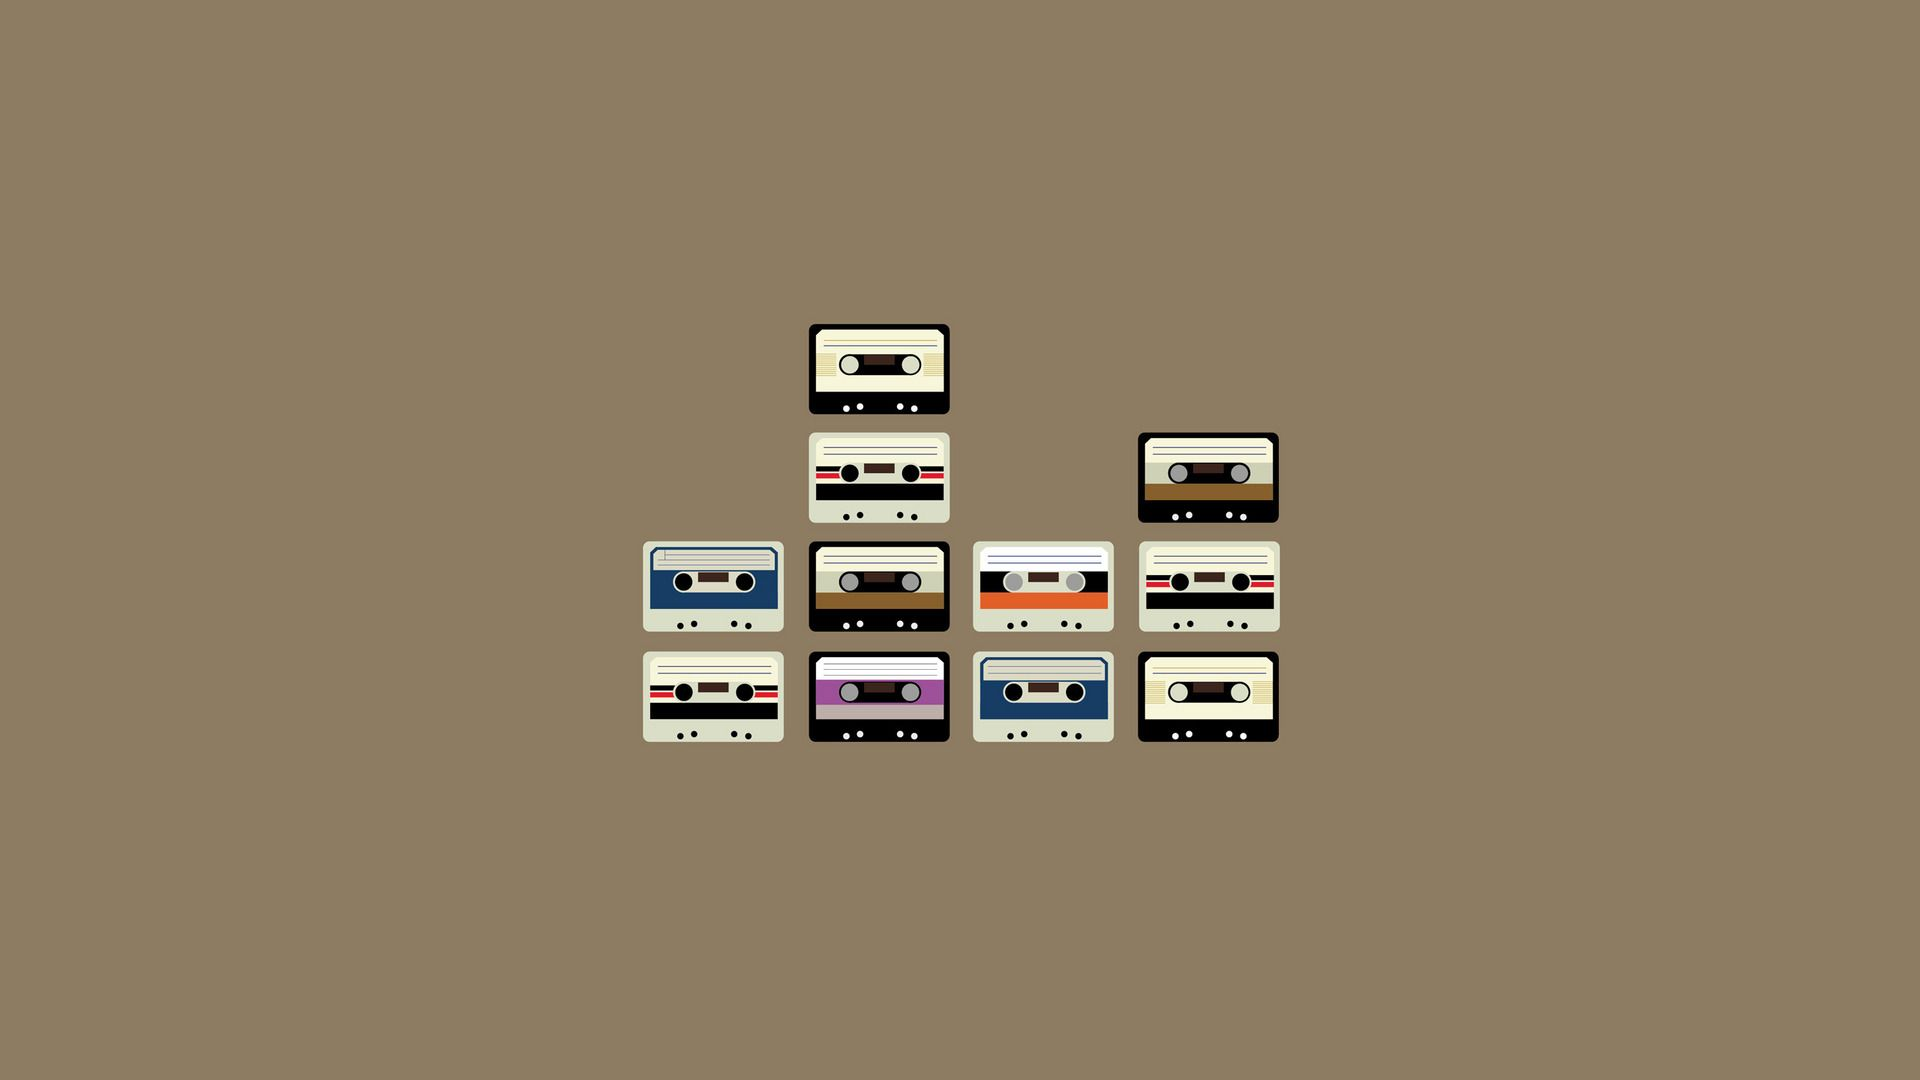 Download Simple Cassette 1920 X 1080 Wallpapers 4412792 Cassette Minimal Minimalism Minimalist Old School Oboi Dlya Rabochego Stola Retro Oboi Dlya Podrostkov